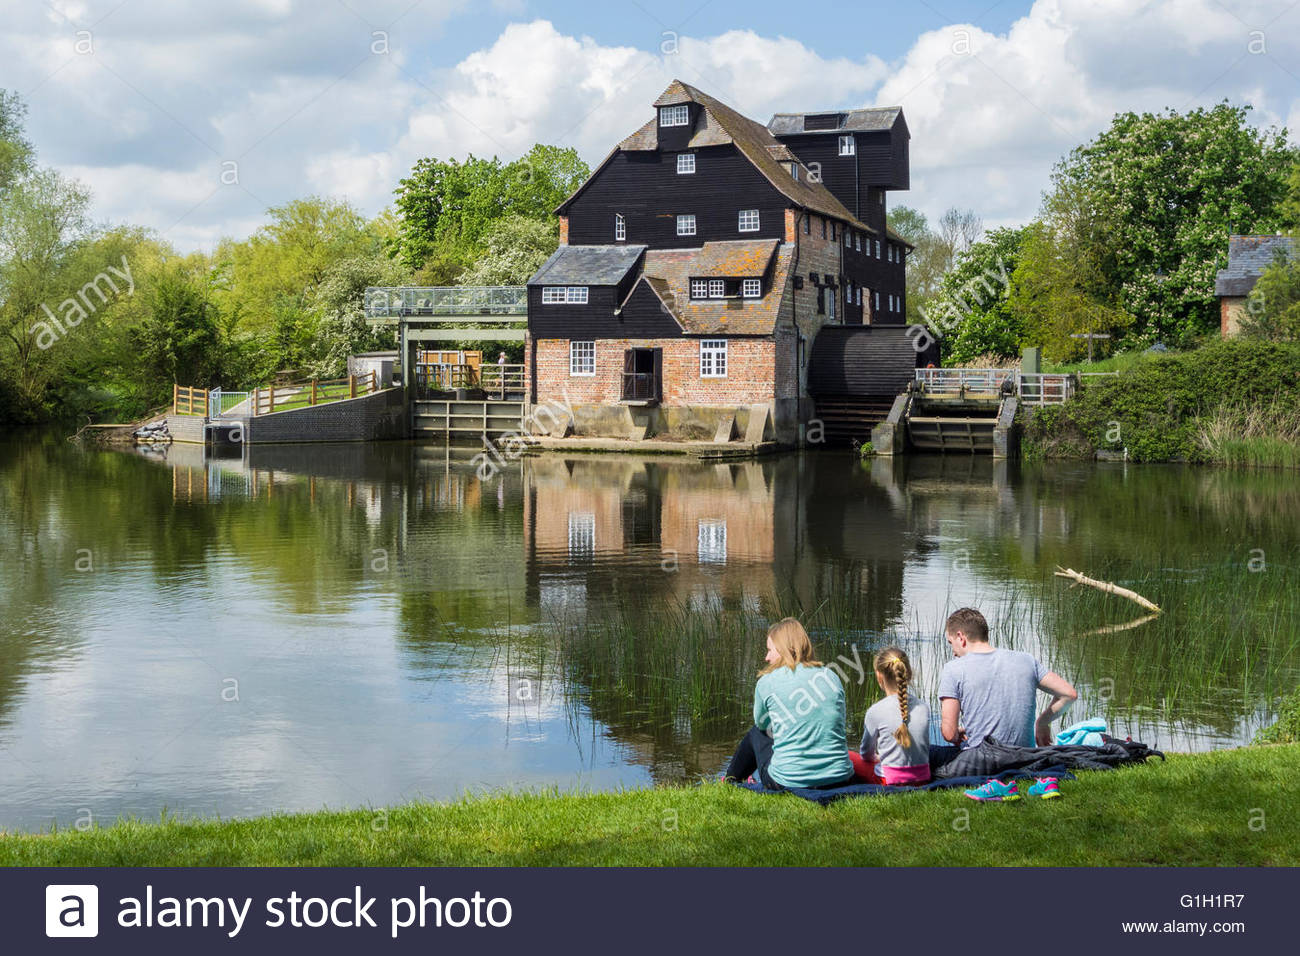 Houghton, Cambridgeshire, UK. 15 May 2016. Visitors relax in the sunshine on the bank of the River Great Ouse at - Stock Image